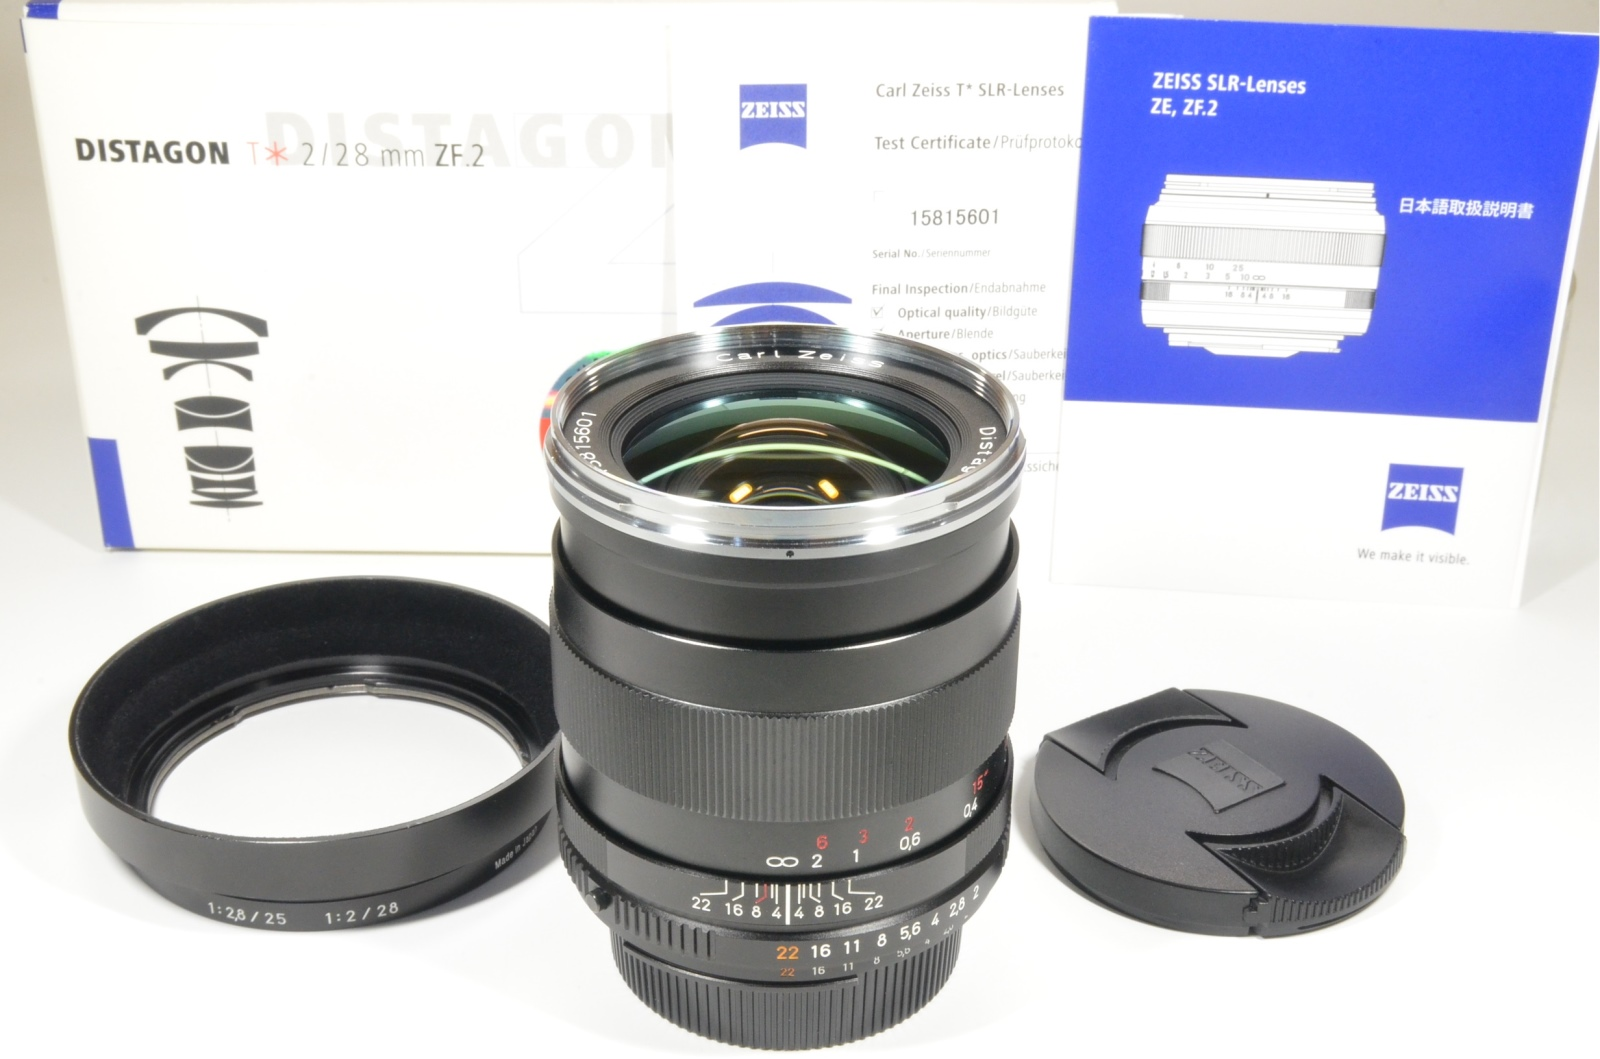 carl zeiss distagon t* 28mm f2 zf.2 lens for nikon in boxed from japan